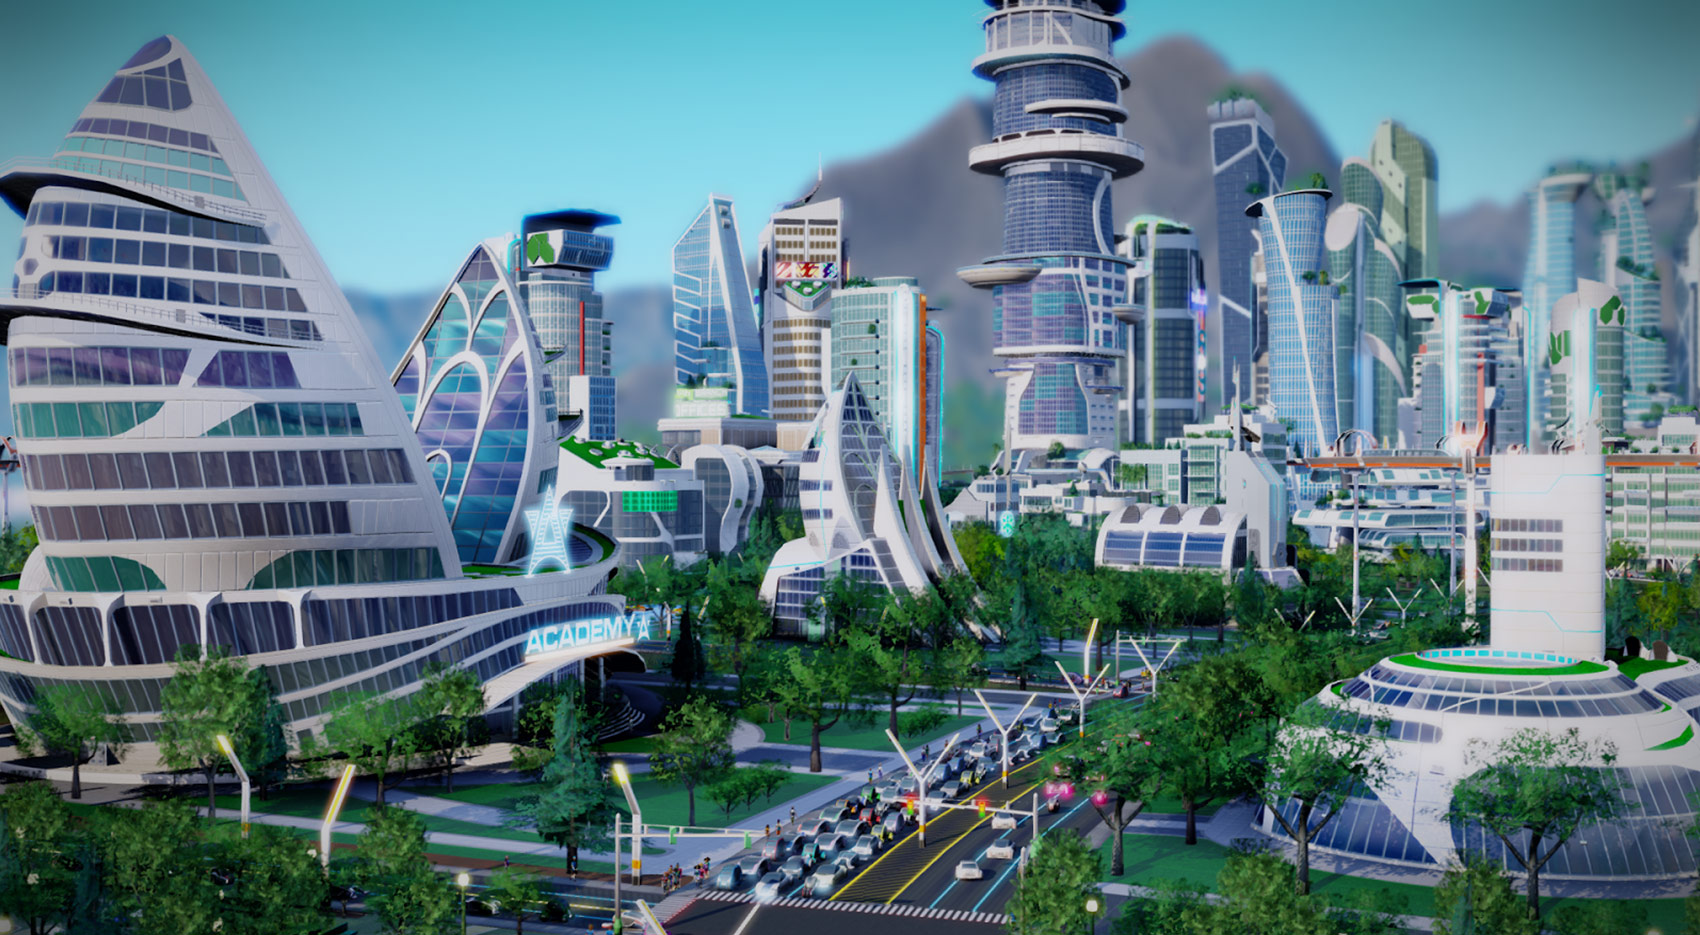 render of a city made with the concept of arcology